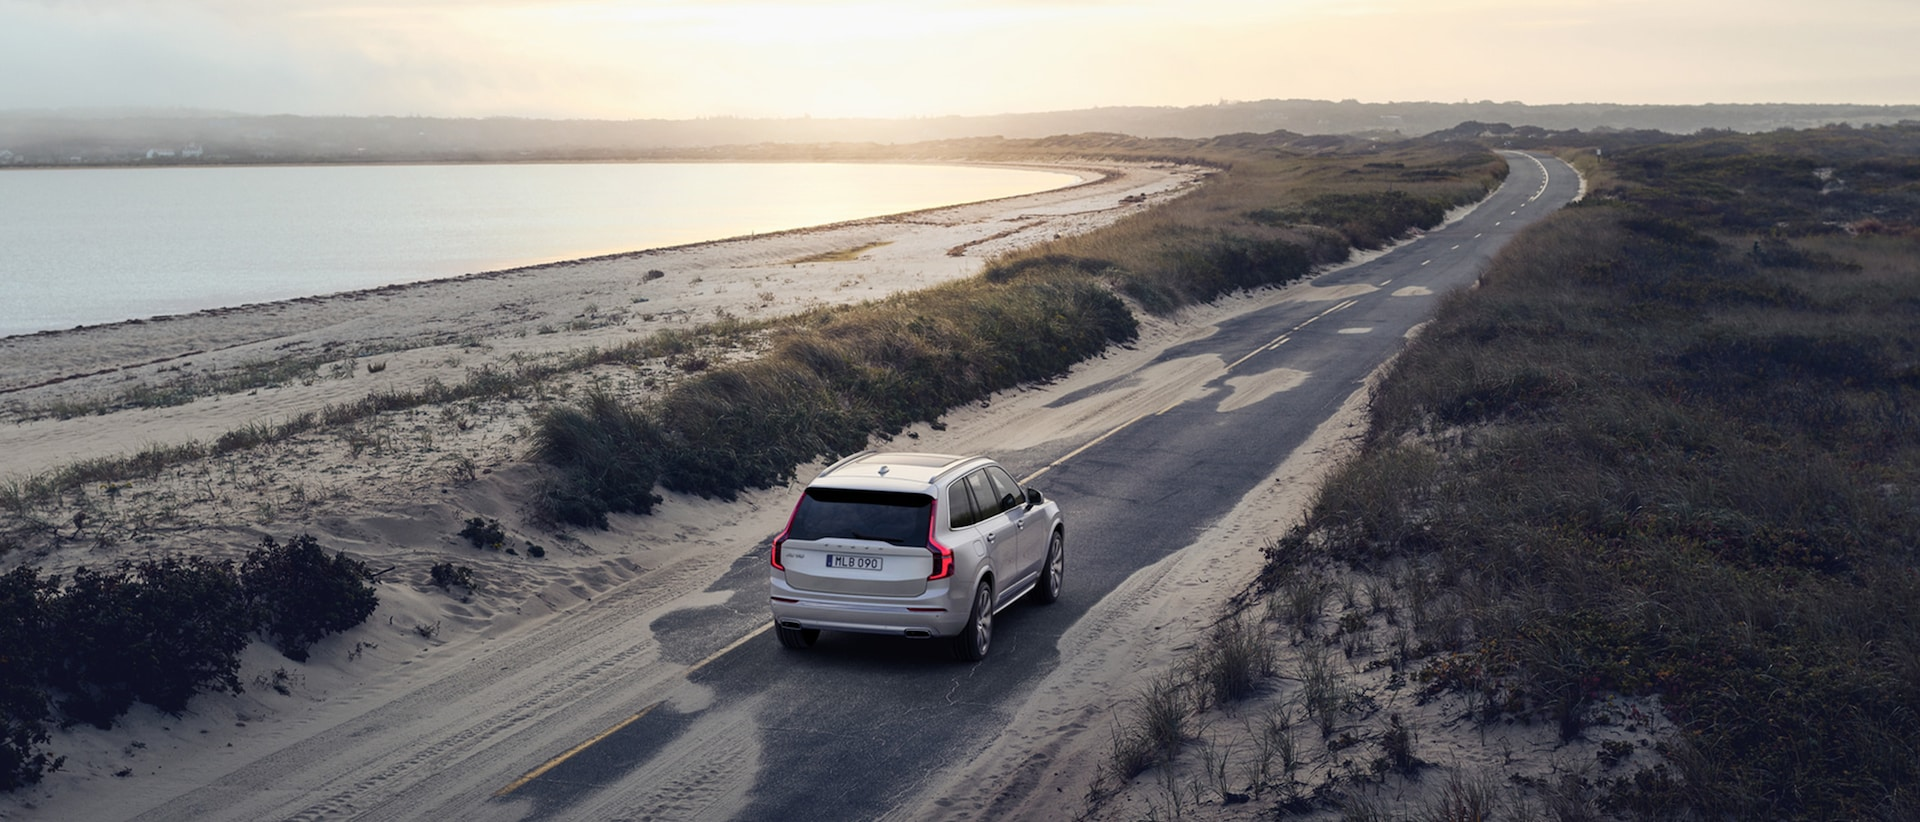 A grey Volvo XC60 is driving on a country road surrounded by open fields at dawn